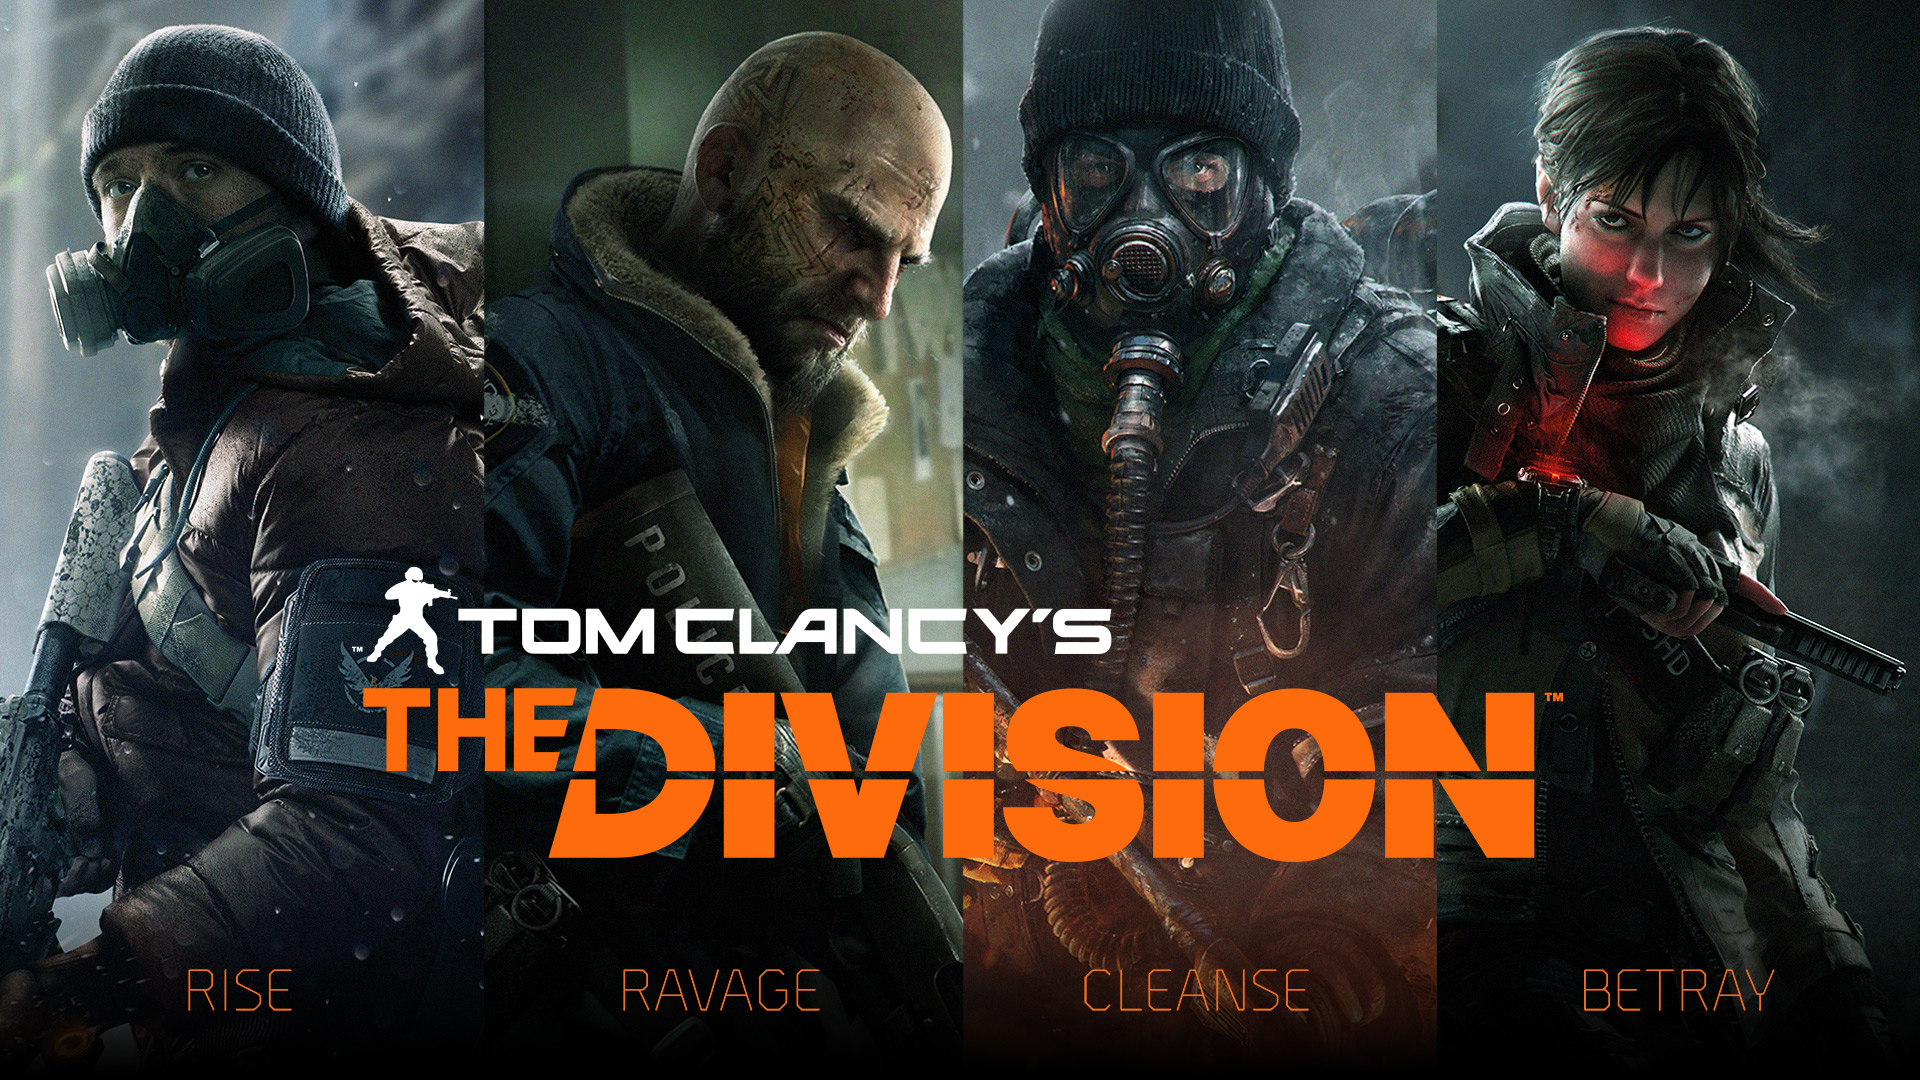 Tom Clancys The Division Poster